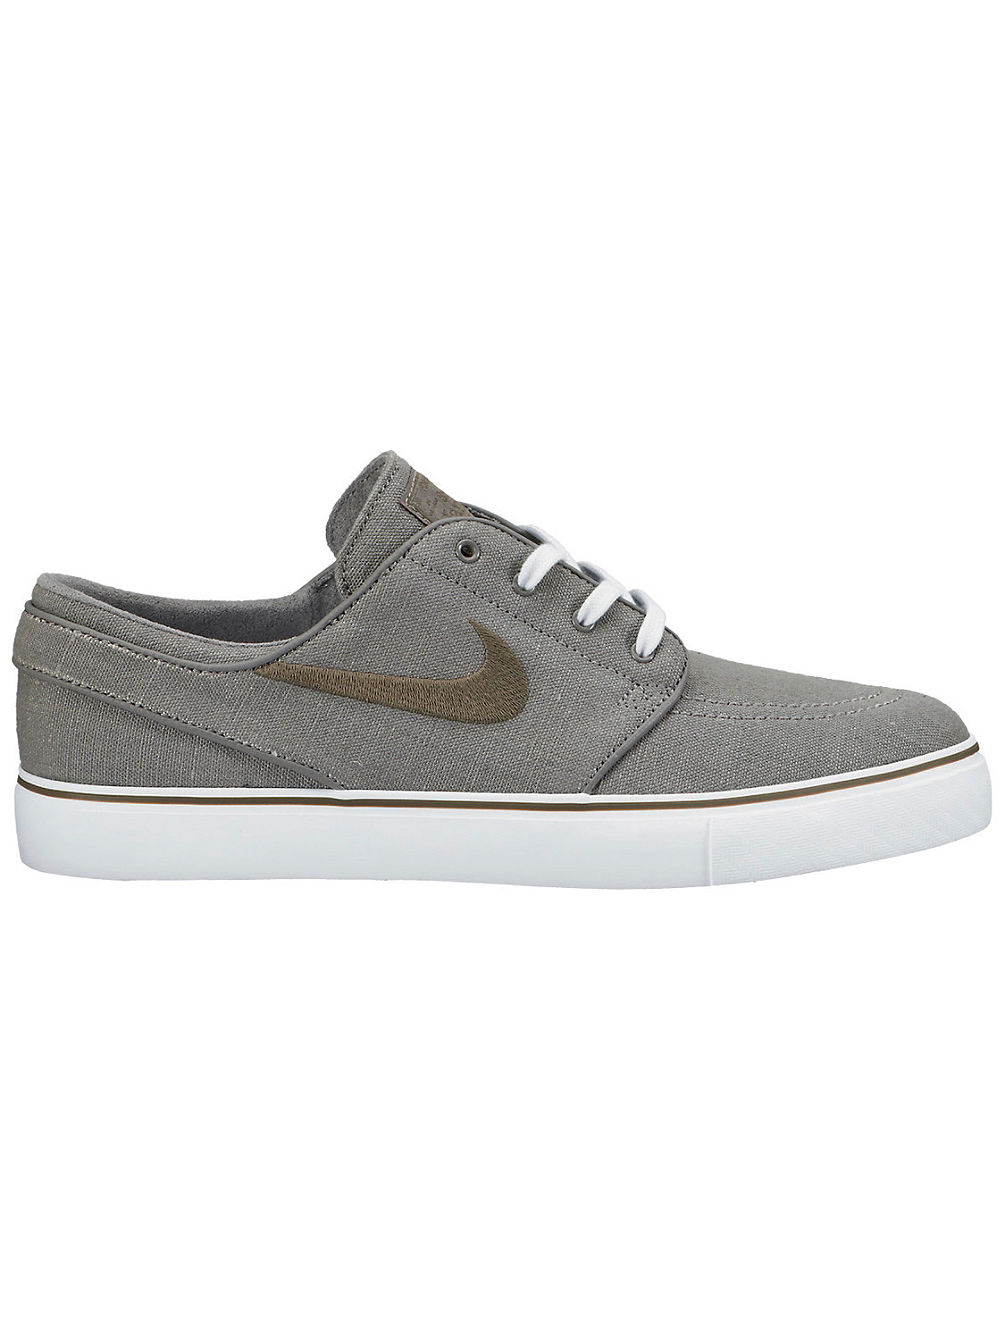 dc052ccd0514 Buy Nike Zoom Stefan Janoski Canvas Skate Shoes online at blue ...